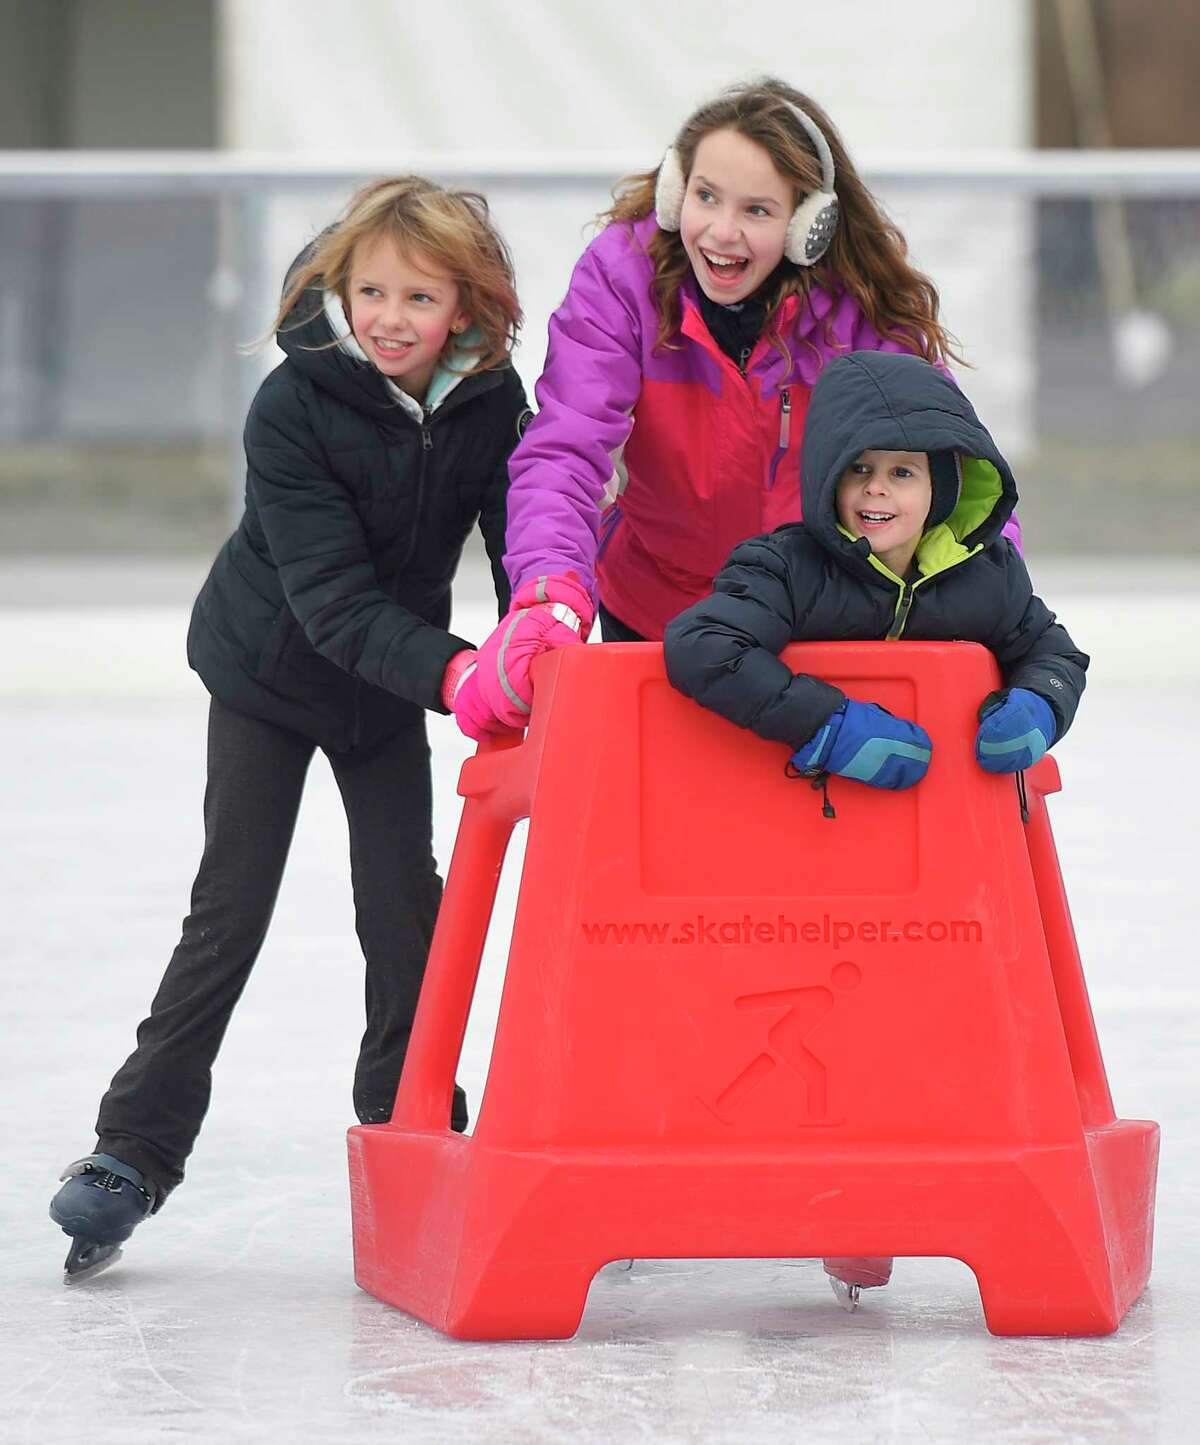 Stamford siblings Julia Keenan, left, 8, Emily Keenan, 12, and Brian Keenan, 4, skate together at the Steven & Alexandra Cohen Skating Center at Mill River Park in Stamford, Conn. Sunday, Dec. 9, 2018. The new 9,000 sq. ft. skating area opened Thursday and will be open seven days a week seasonally through March 15.